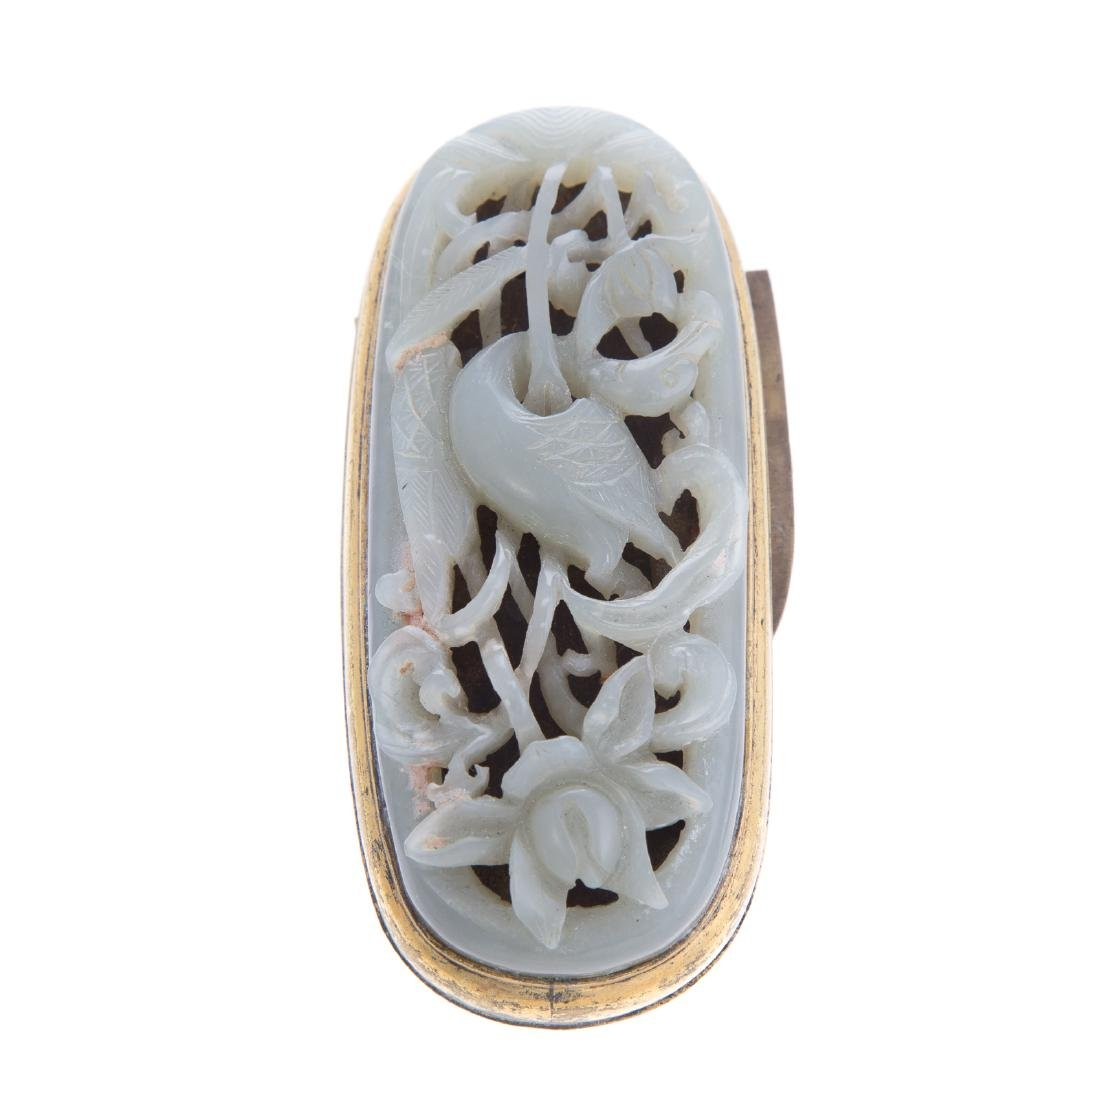 Chinese carved jade amulet